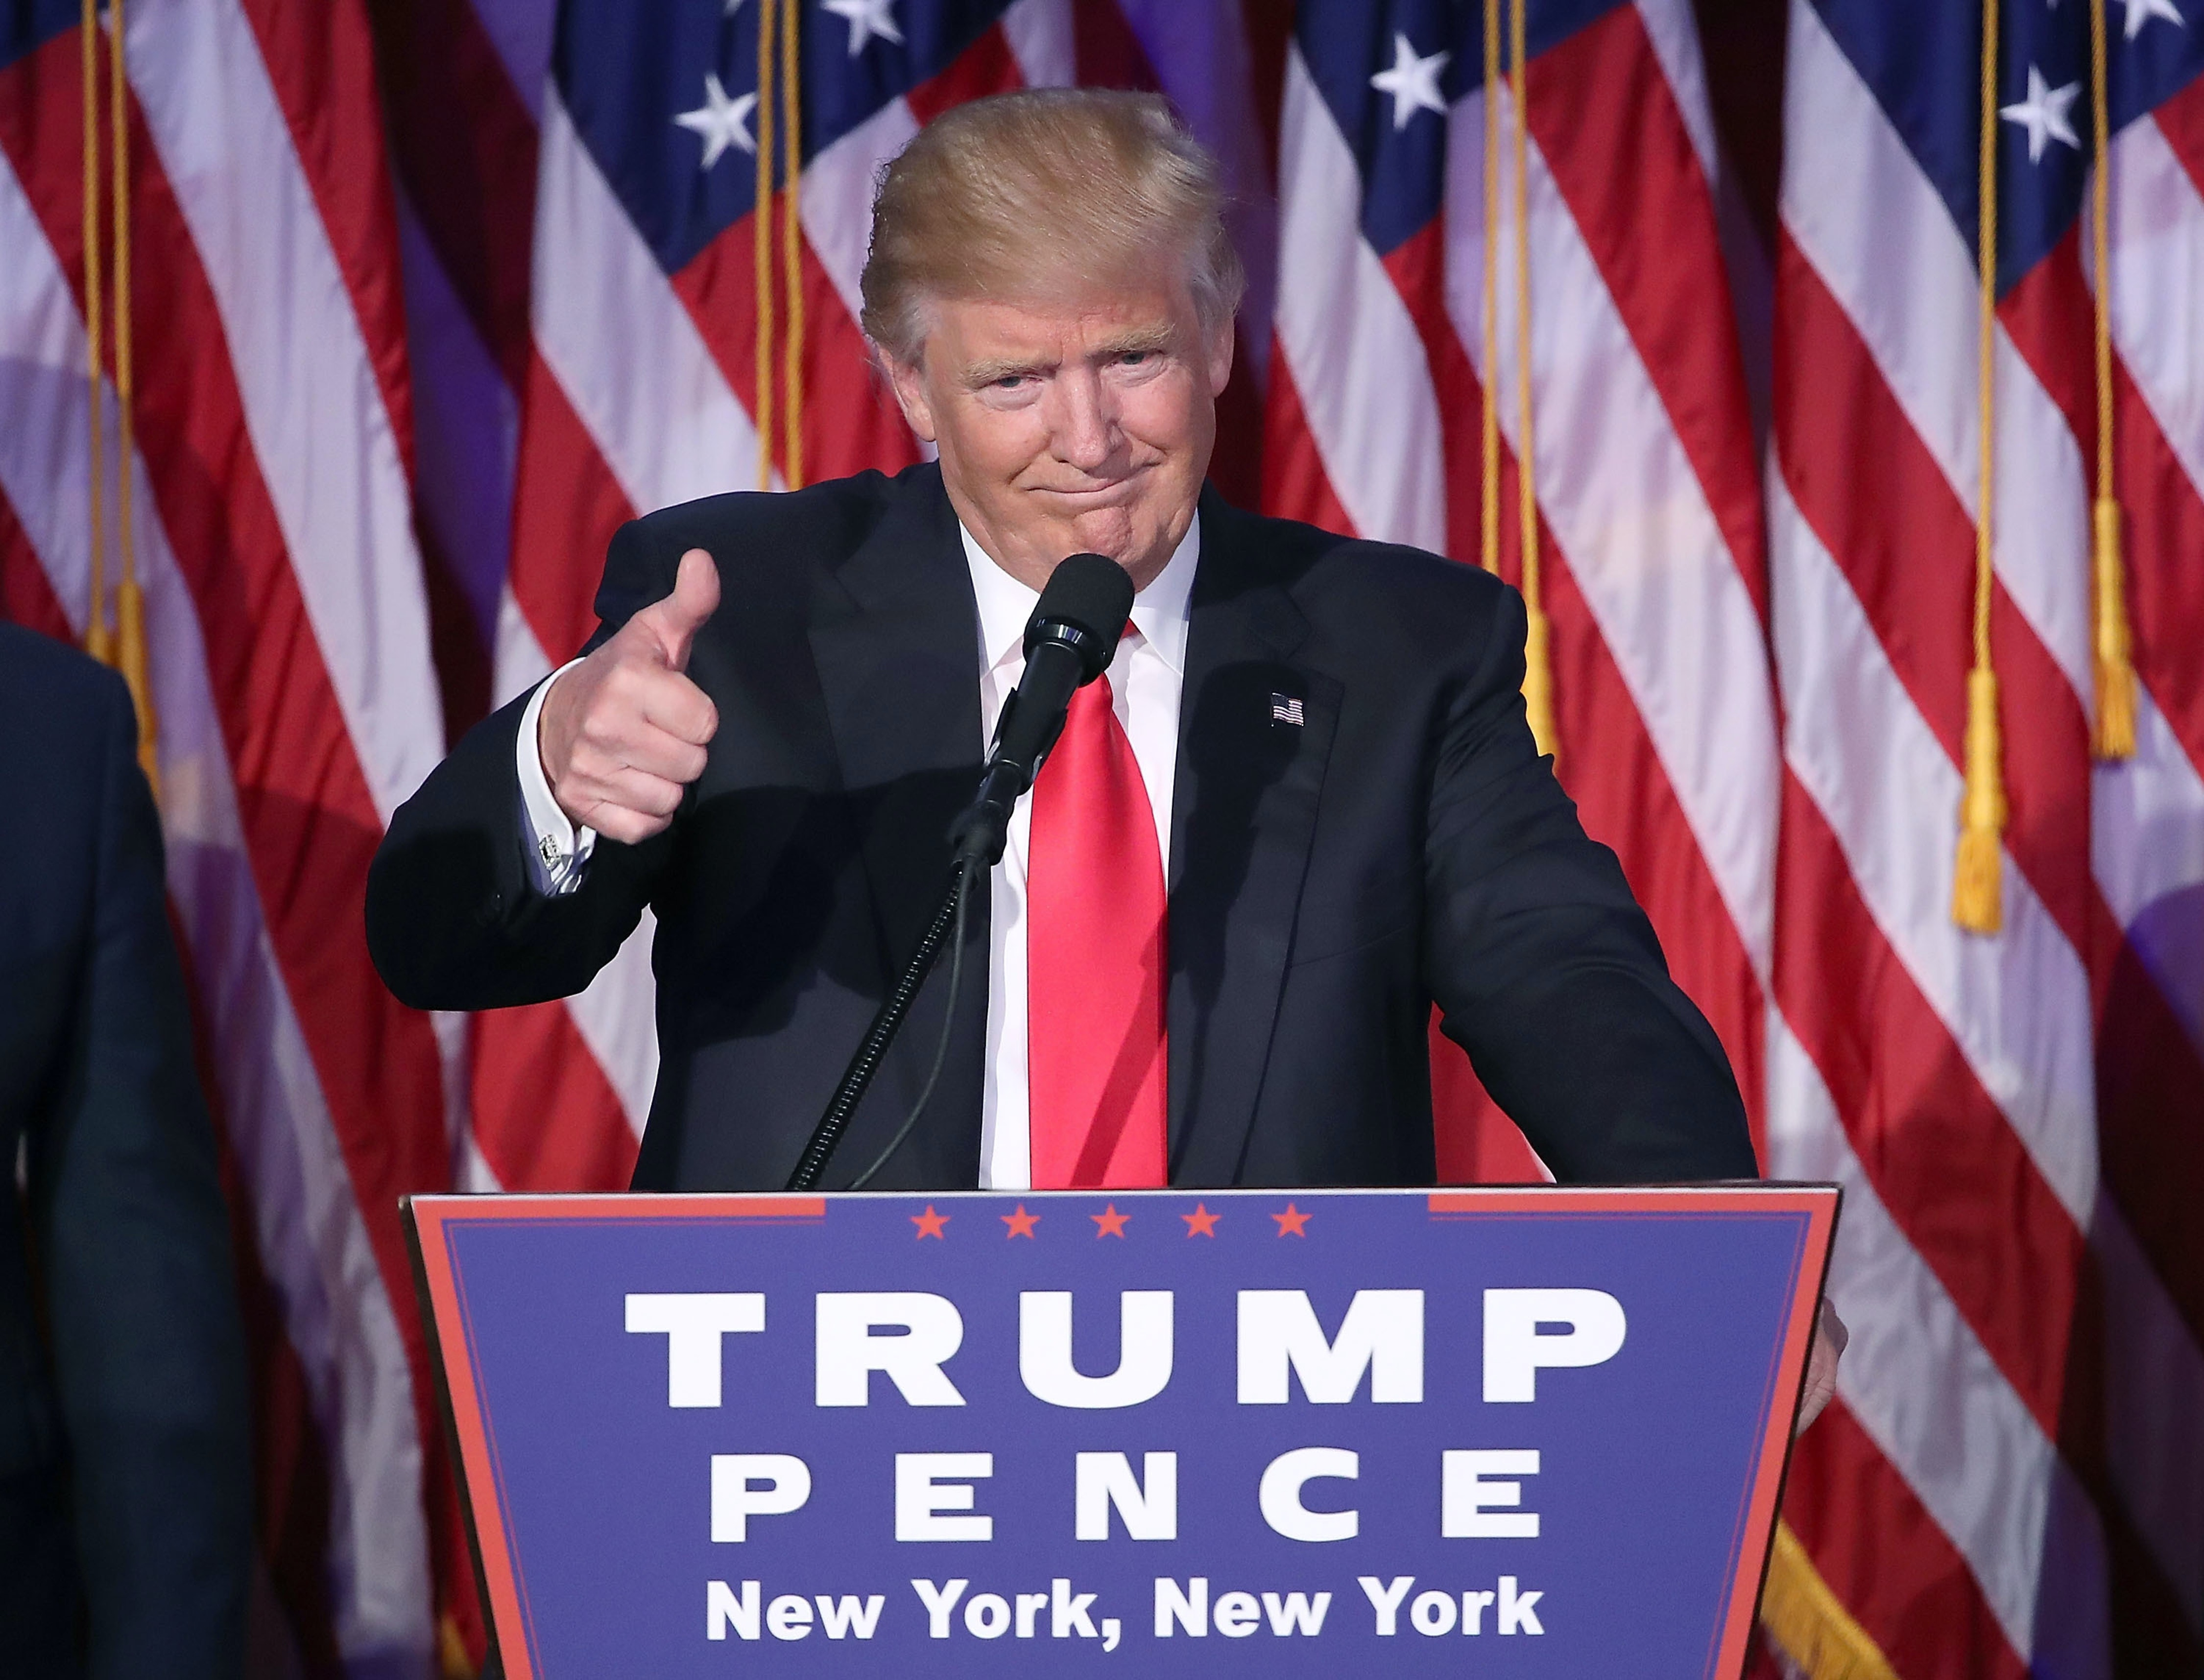 Republican president-elect Donald Trump gives a thumbs up to the crowd during his acceptance speech at his election night event at the New York Hilton Midtown in the early morning hours of November 9, 2016 in New York City.